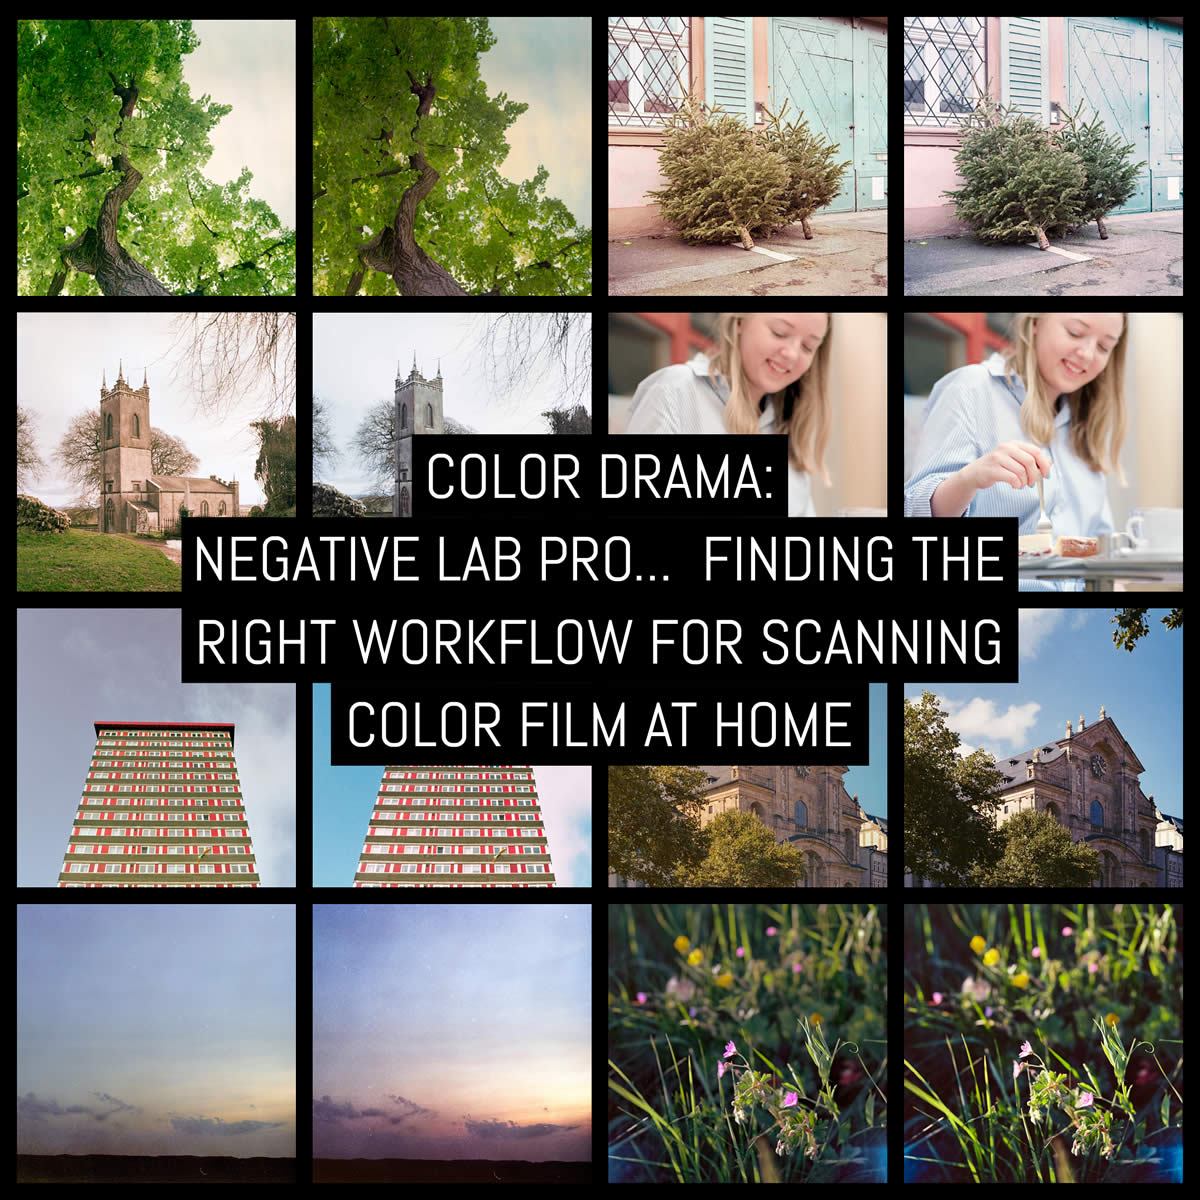 Color drama: Negative Lab Pro v2… Finding the right workflow for scanning color film at home